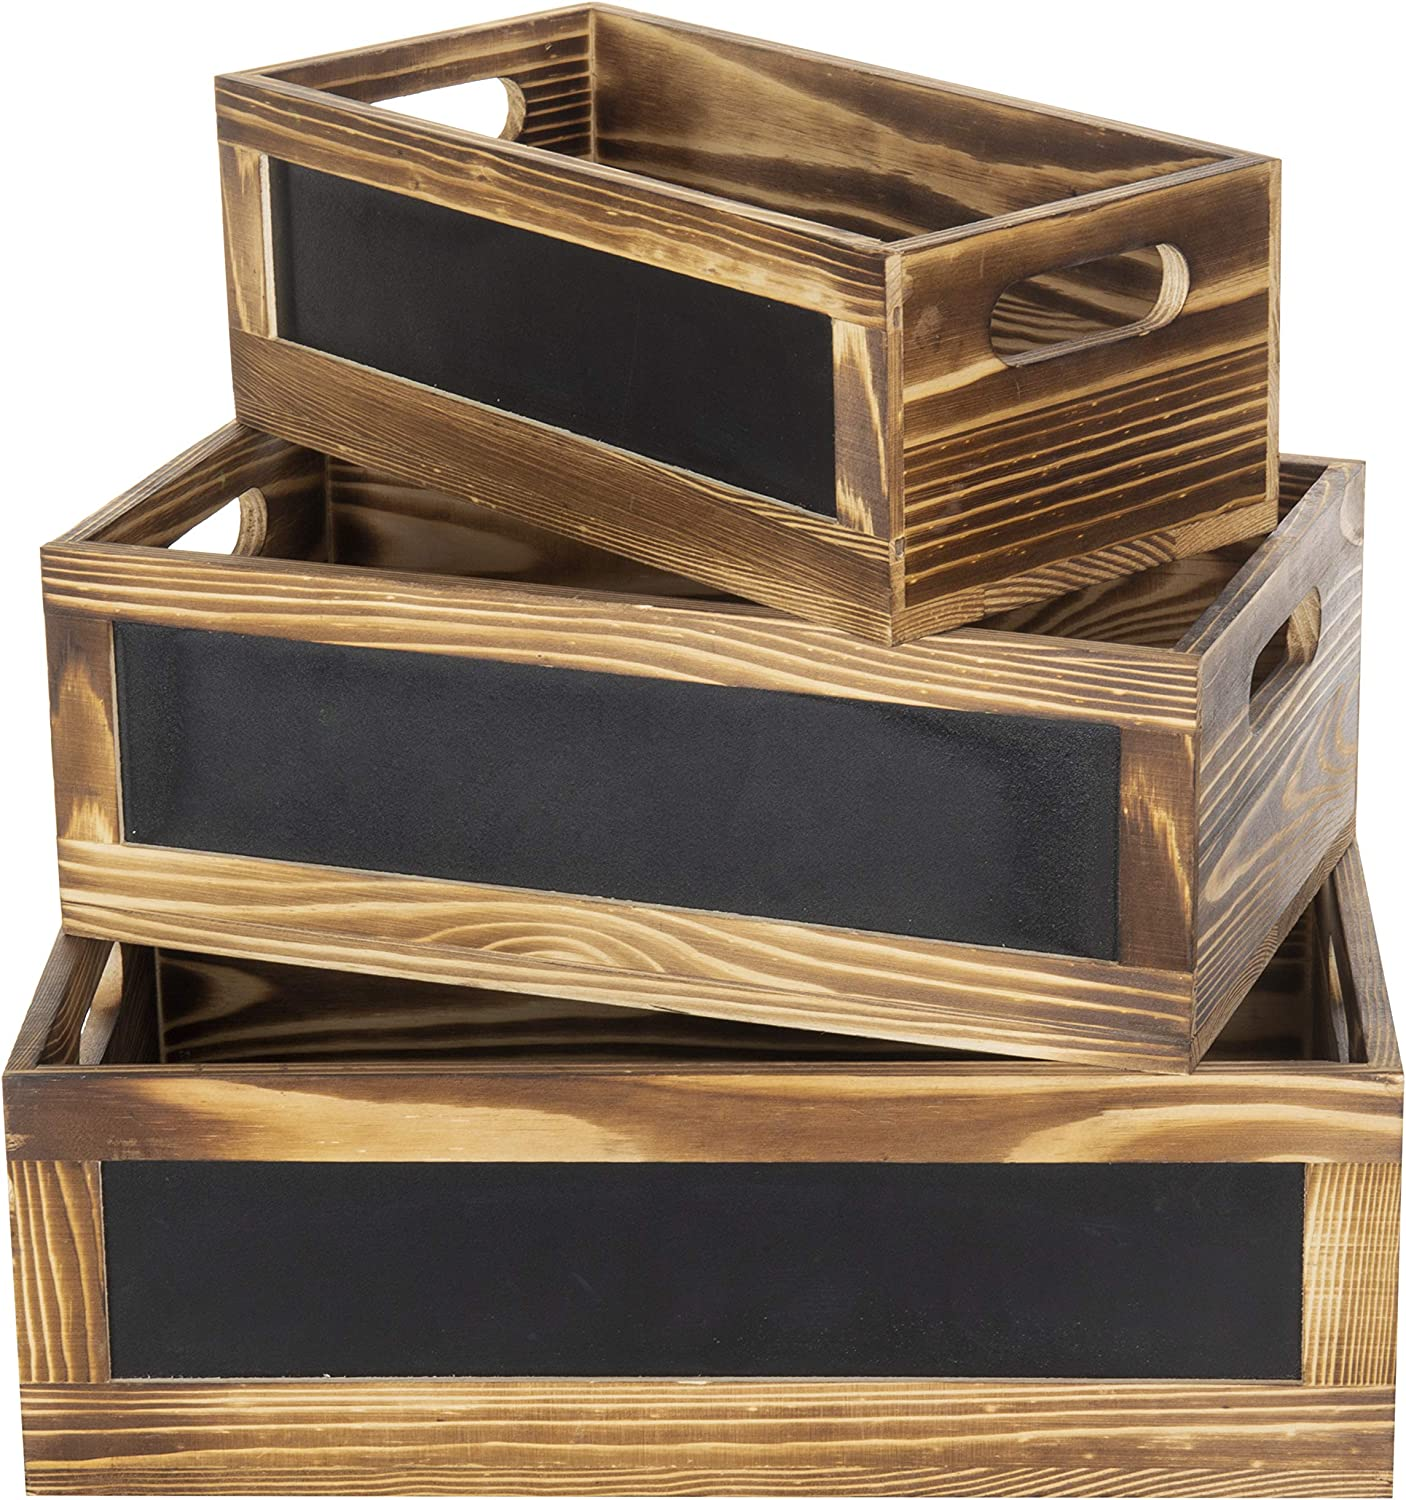 Offex Home Decorative Large American Flag Wood Storage Crates with Jute Handles